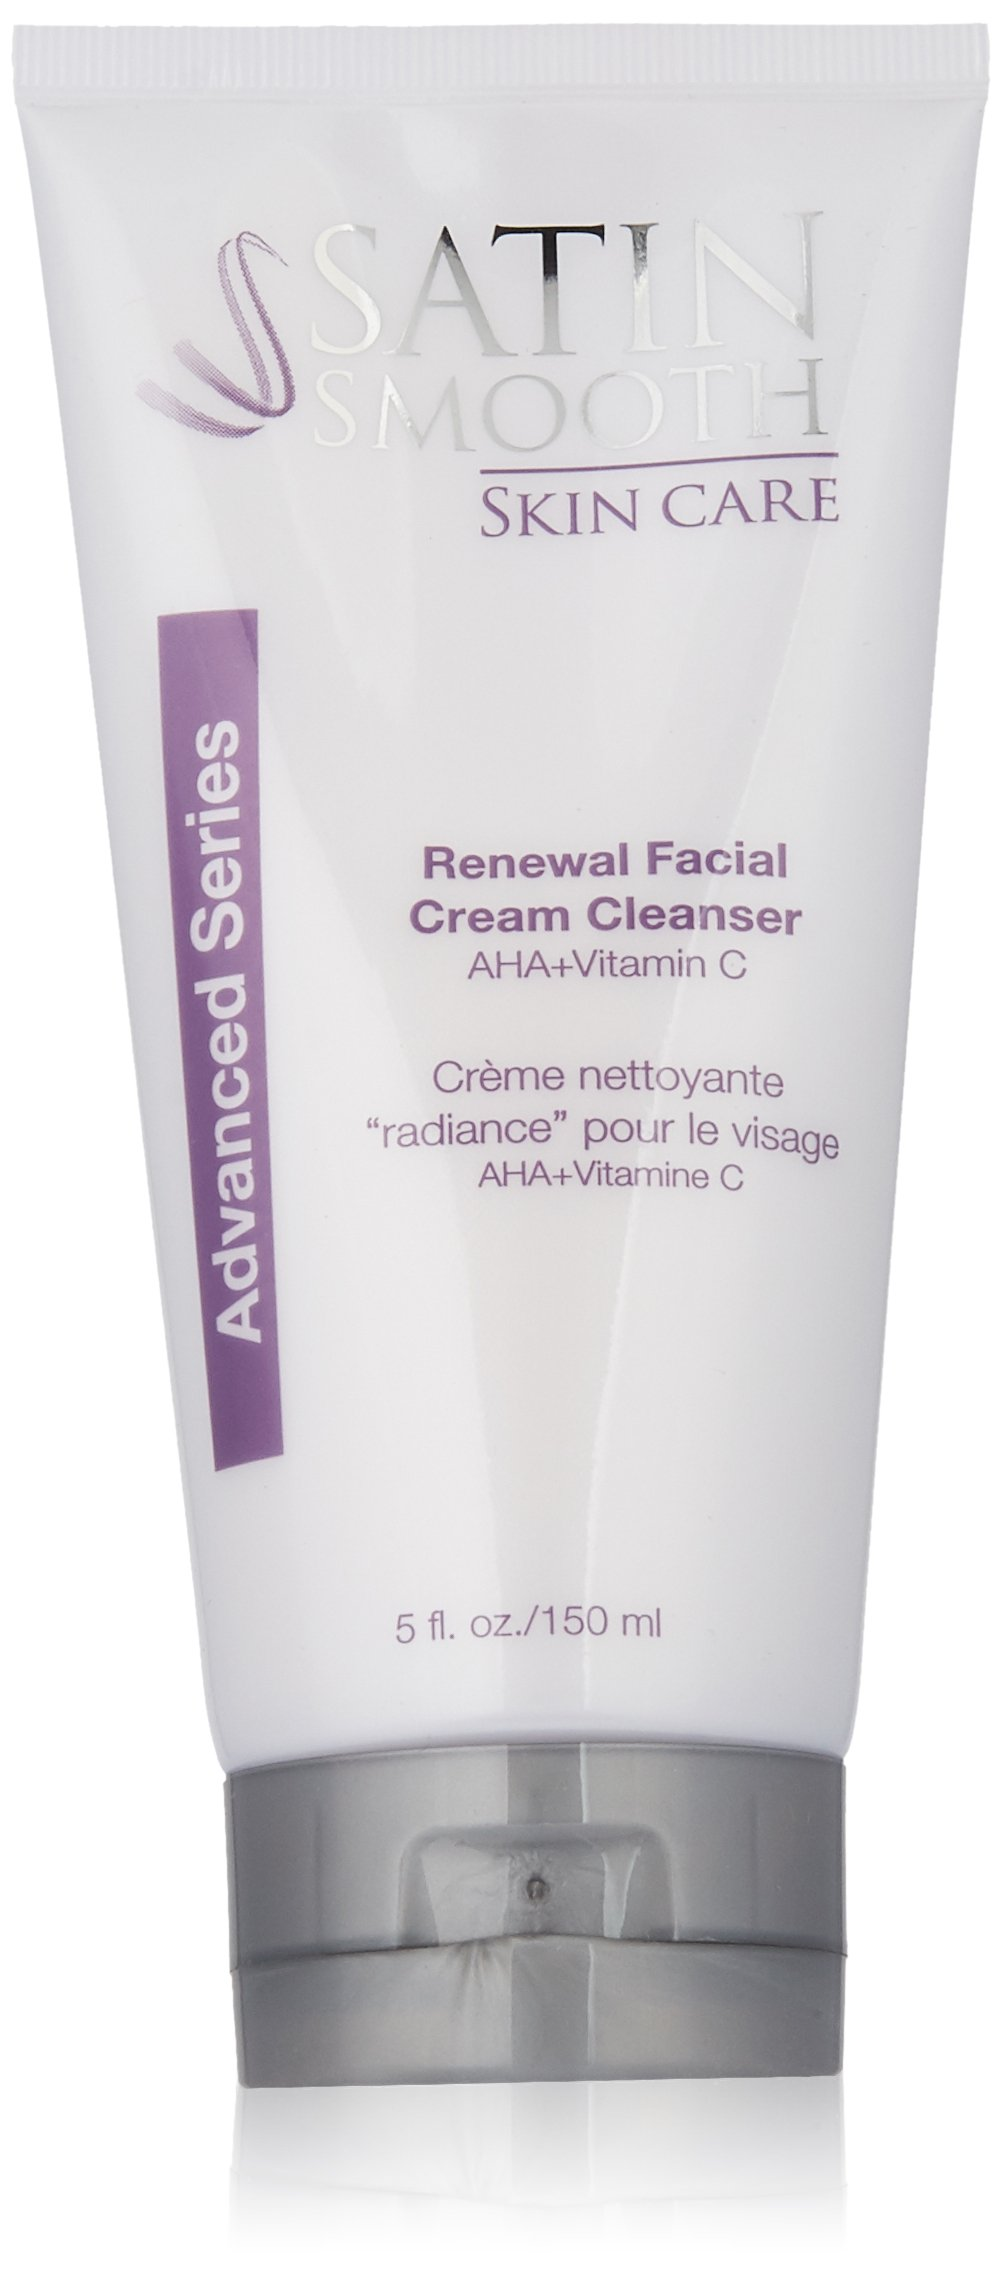 Satin Smooth Skin Care Facial Renewal Cream Cleanser, 5 Ounce